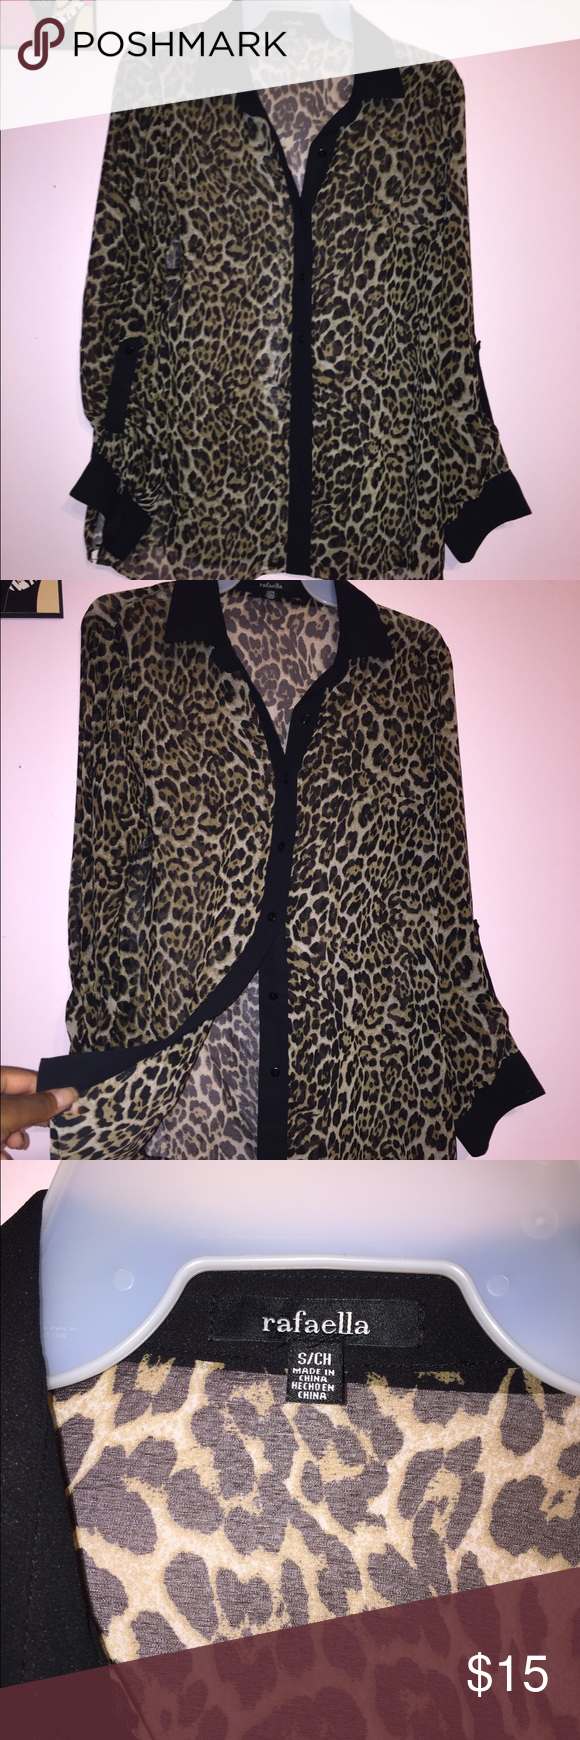 Oversized Cheetah Print Blouse!! Free Shipping!! A classic staple for your closet! Oversized printed Blouse with black collar lining! Very sheer/see through! Sexy and versatile! Will take offers! Tops Button Down Shirts